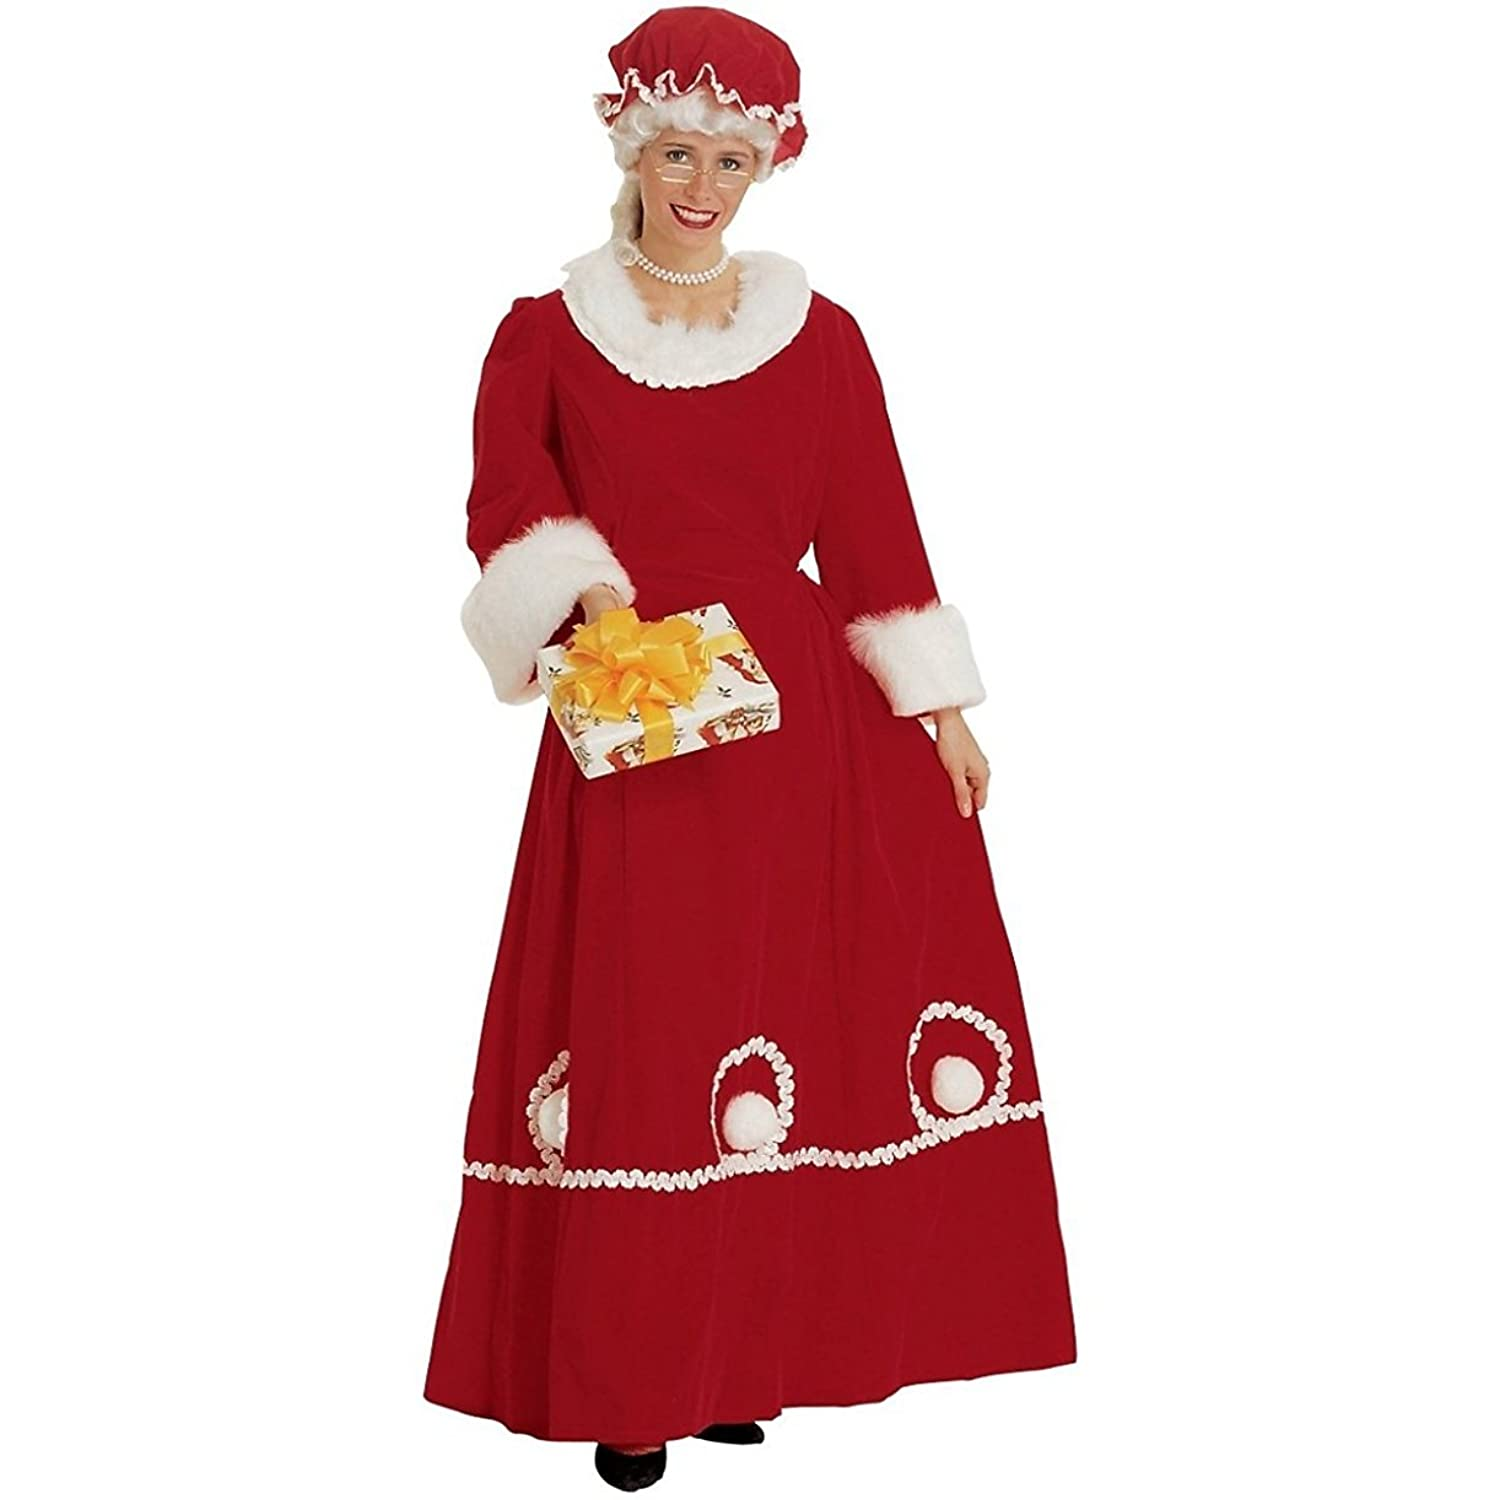 Mrs. Santa Claus Deluxe Adult Women's Costume Small/Medium - DeluxeAdultCostumes.com